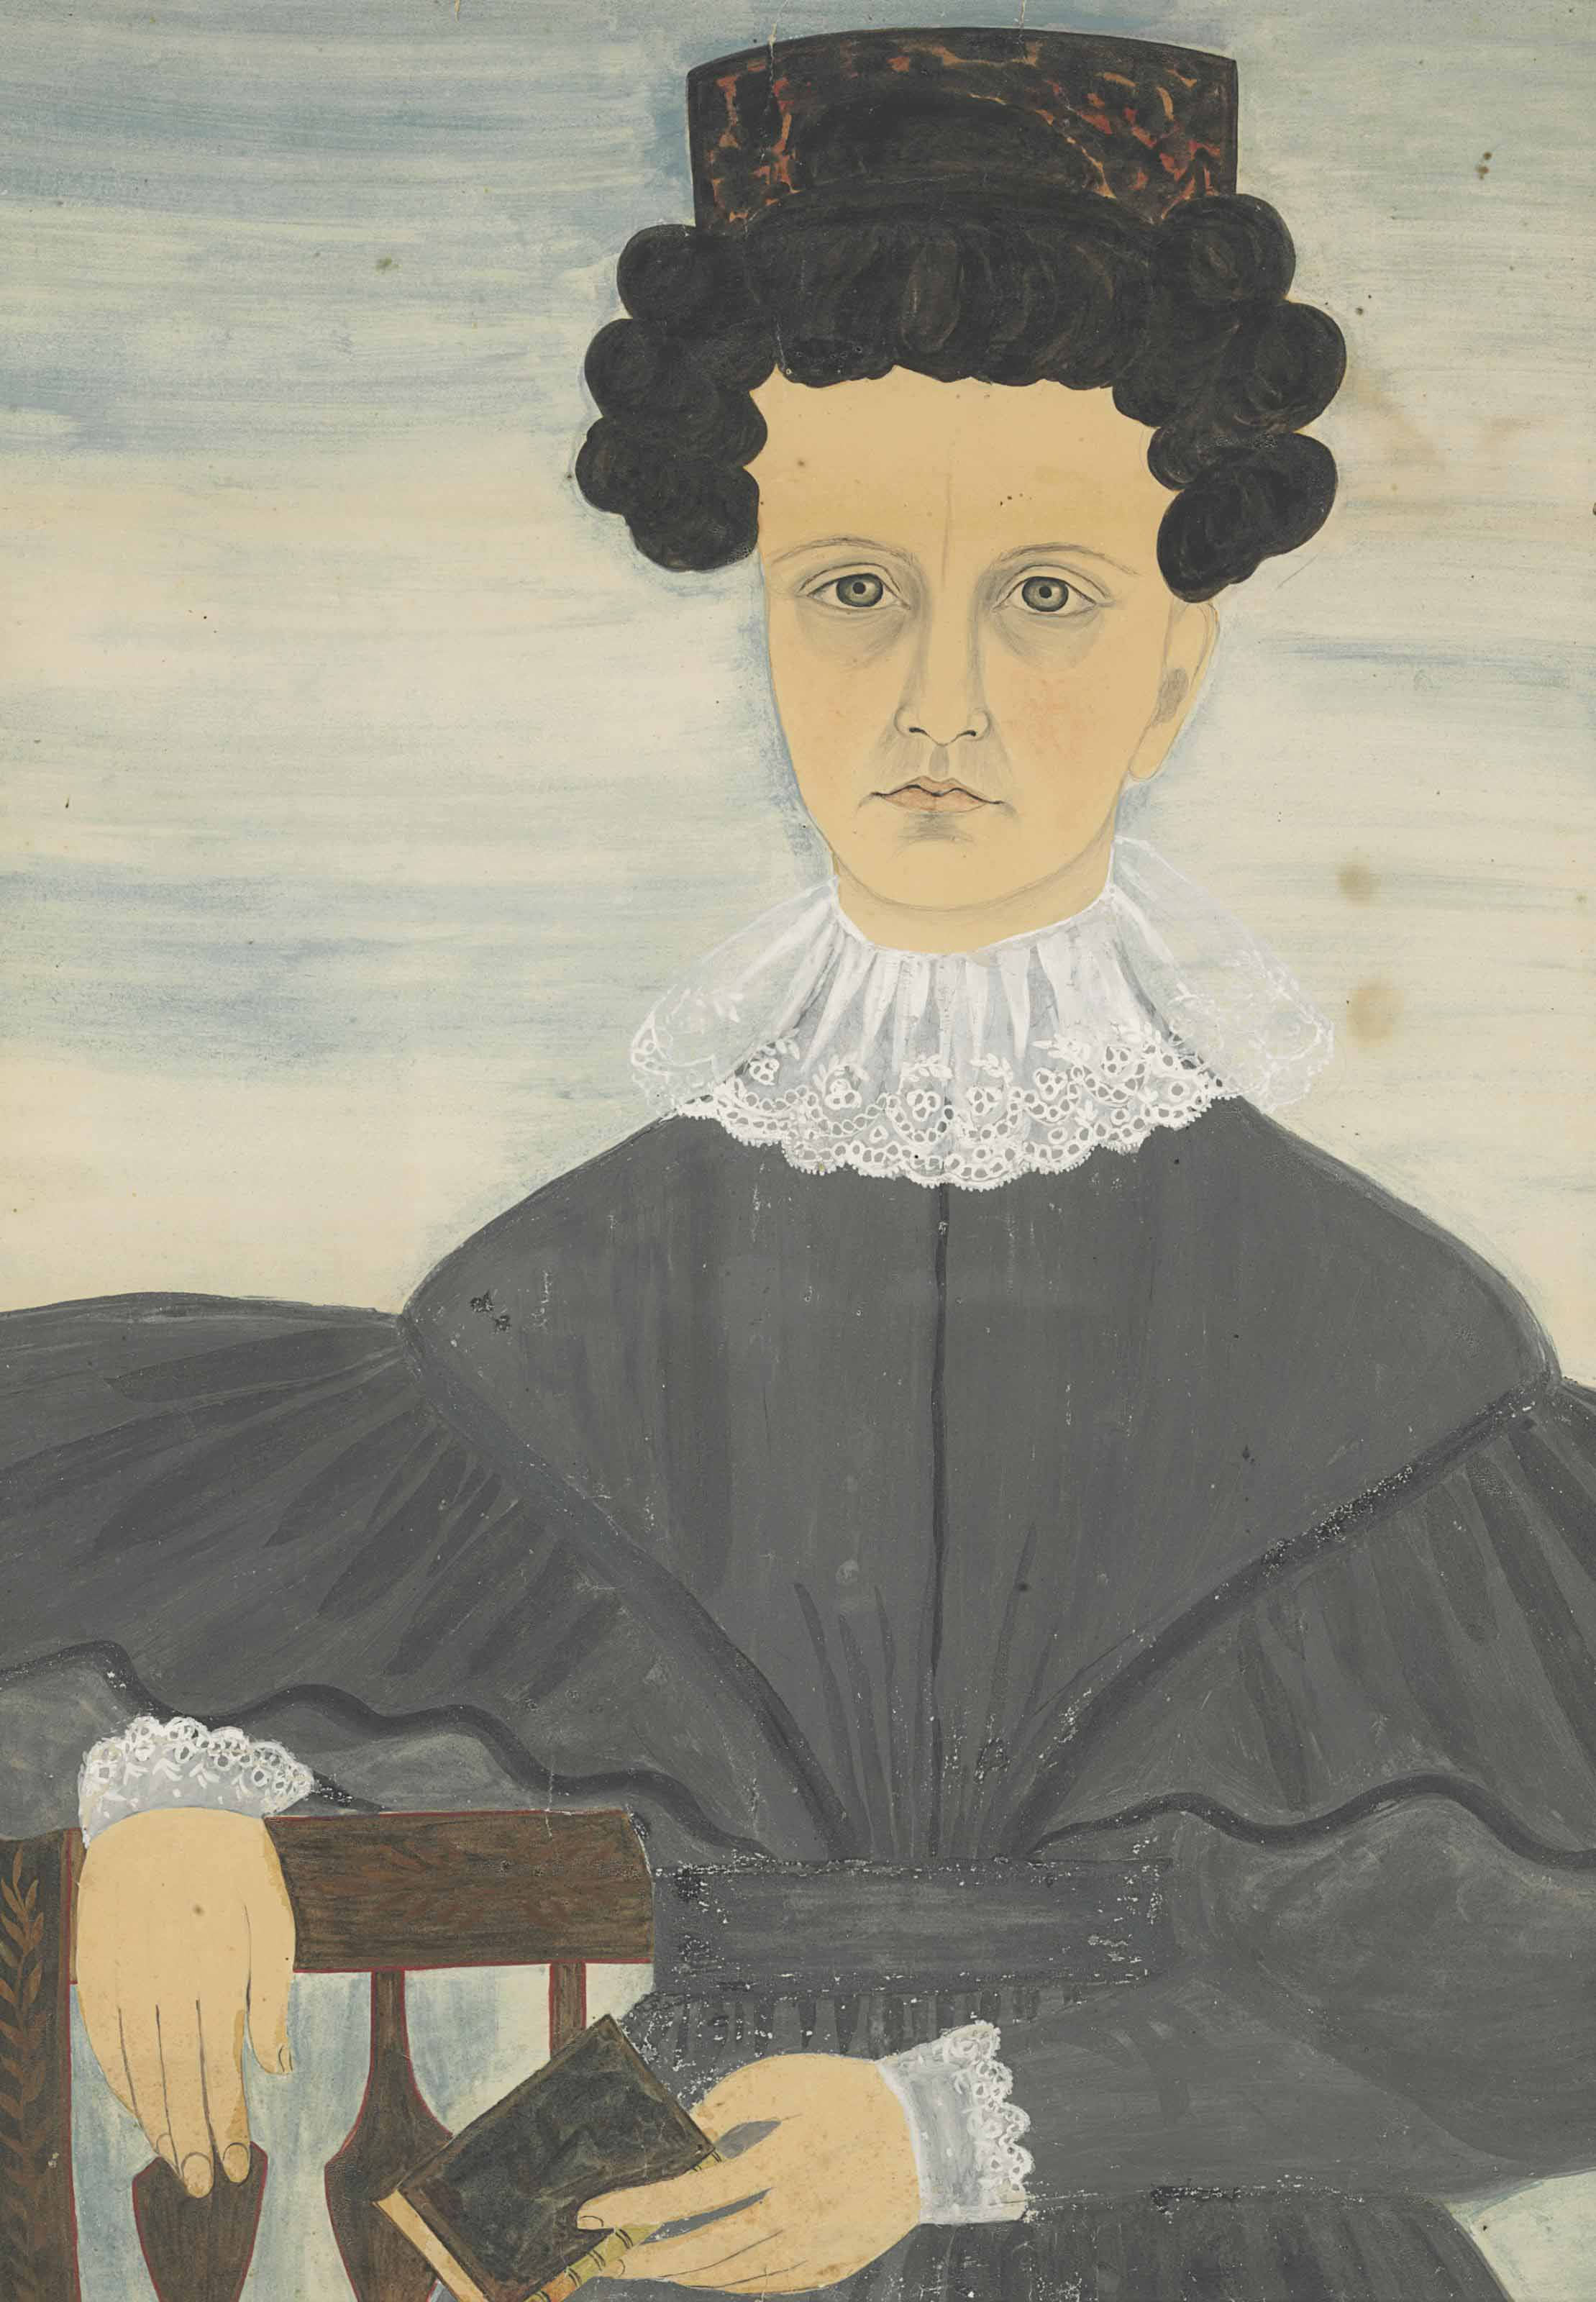 Attributed to Ruth Whittier (1